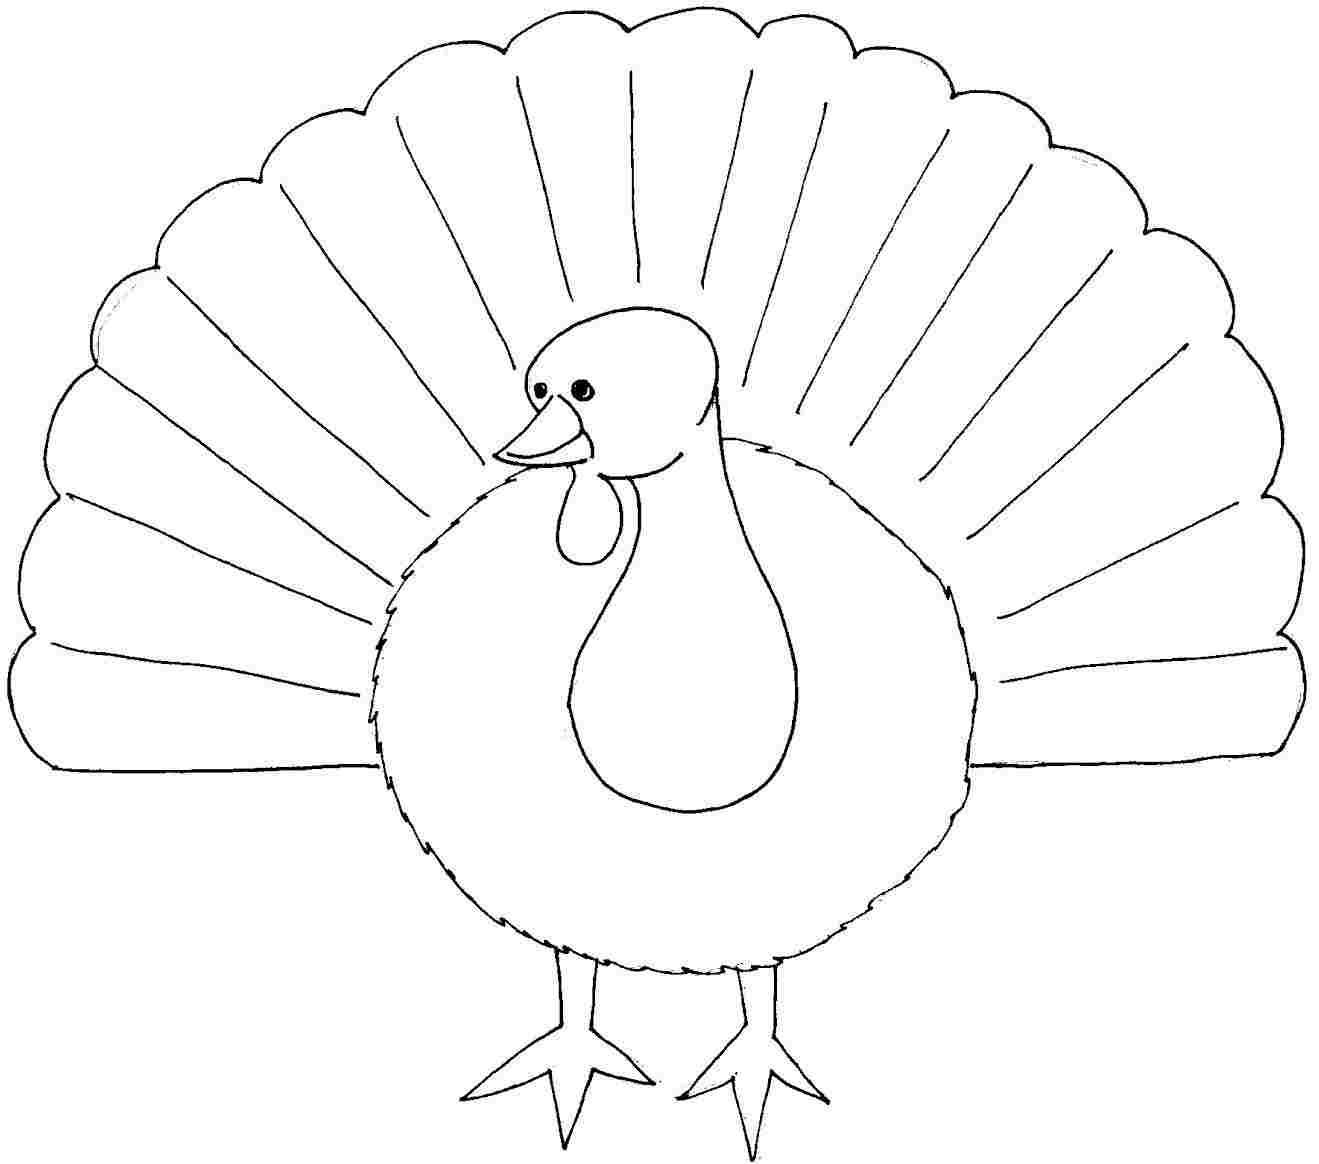 Printable Free Thanksgiving Turkey